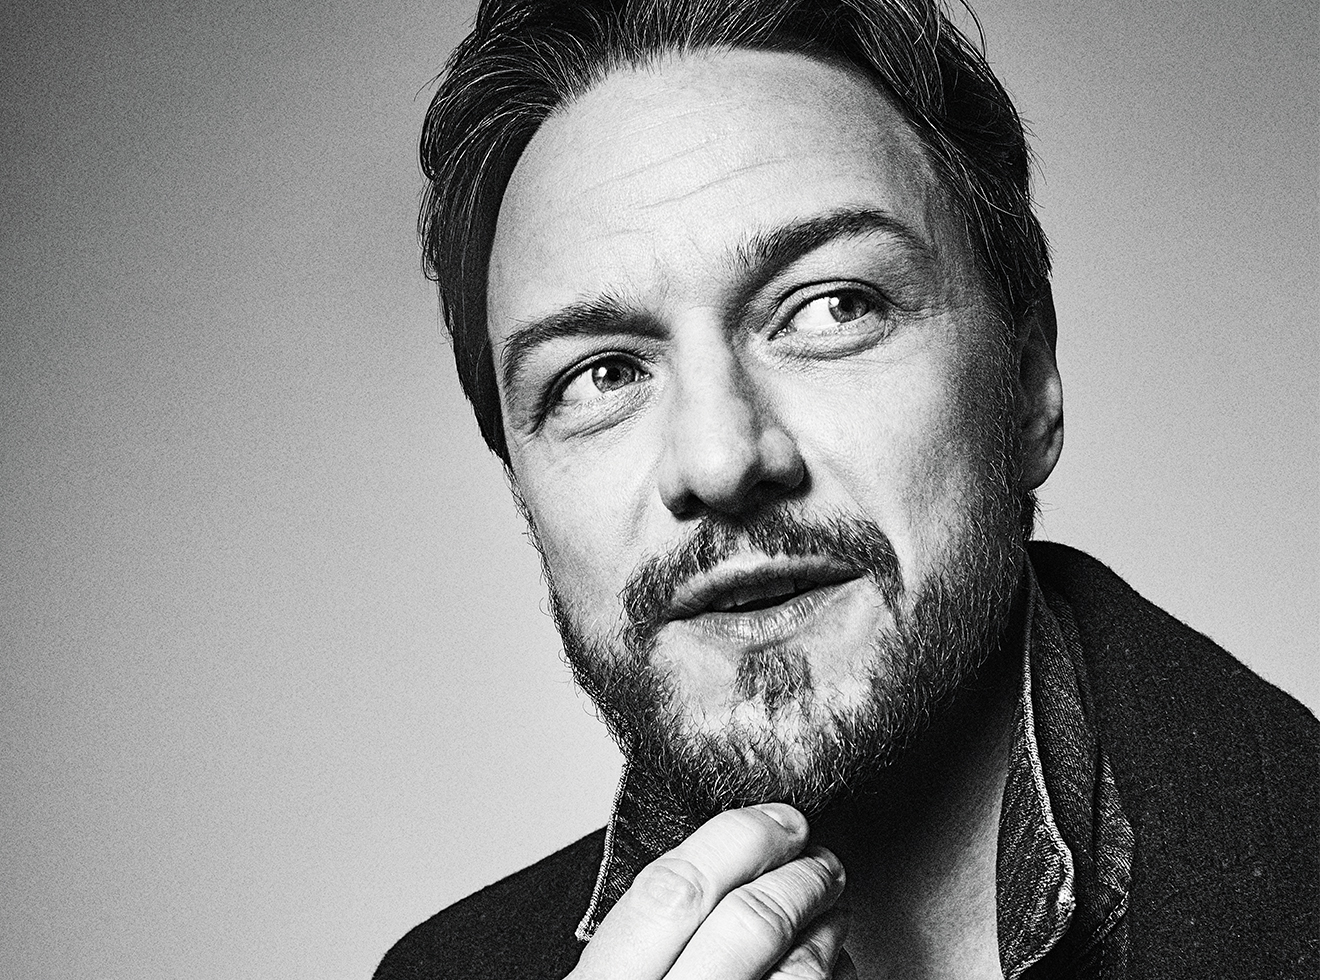 James McAvoy Cover Story: The Hero With a Thousand Faces